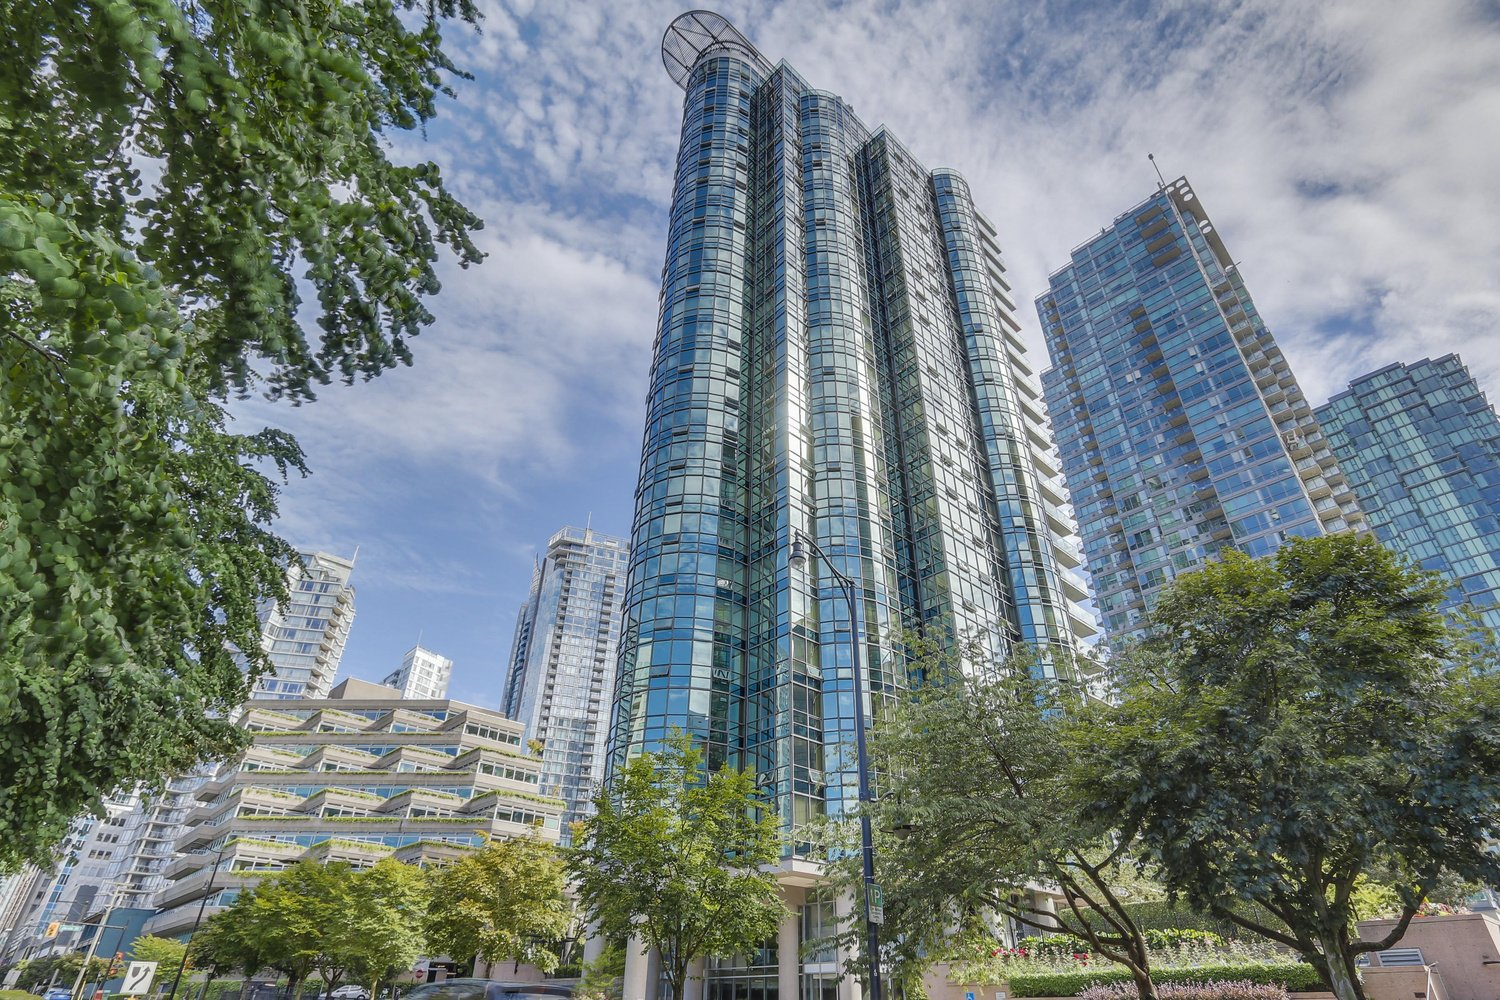 [LEASED] Harbourside Park I – Vancouver Downtown Coal Harbour – Mountain + Ocean View – 2 Beds – 2 Baths – 900 sq ft – Classy Luxury Condo